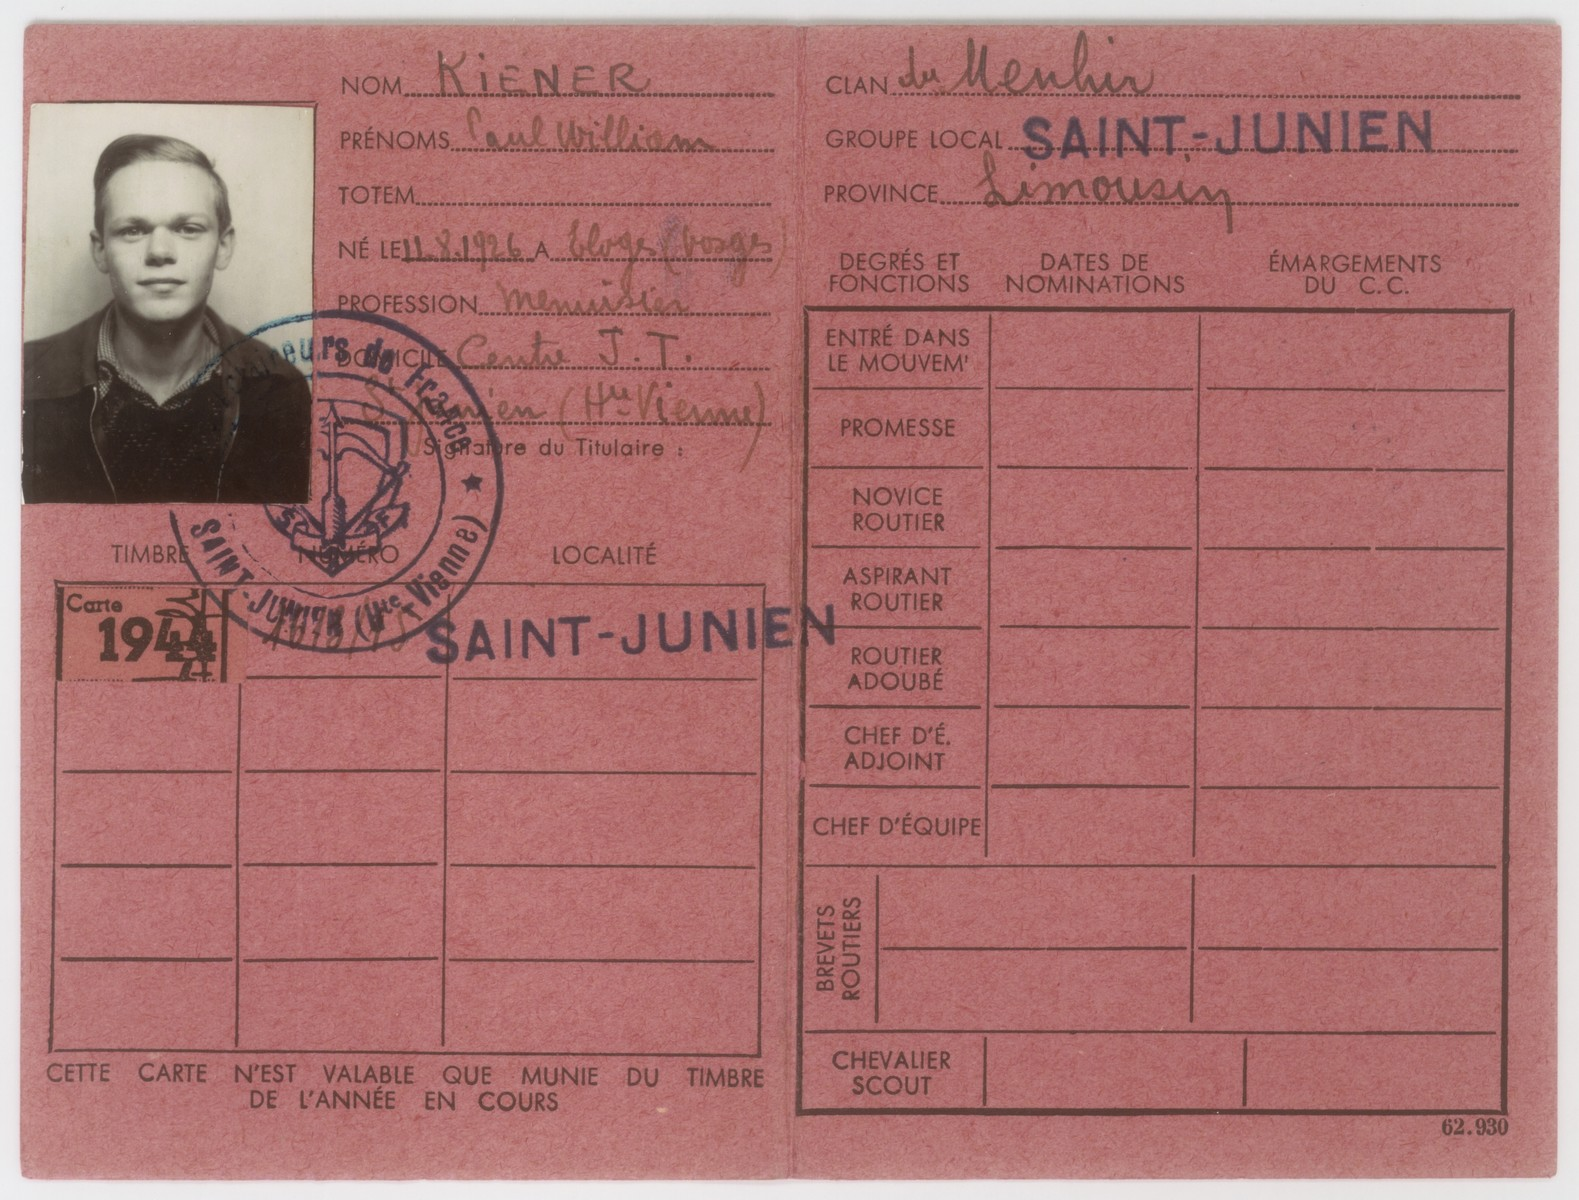 Identity card issued to Walter Karliner at the national center of the Vichy fascist movement, Moissons Nouvelles, in St. Junien.